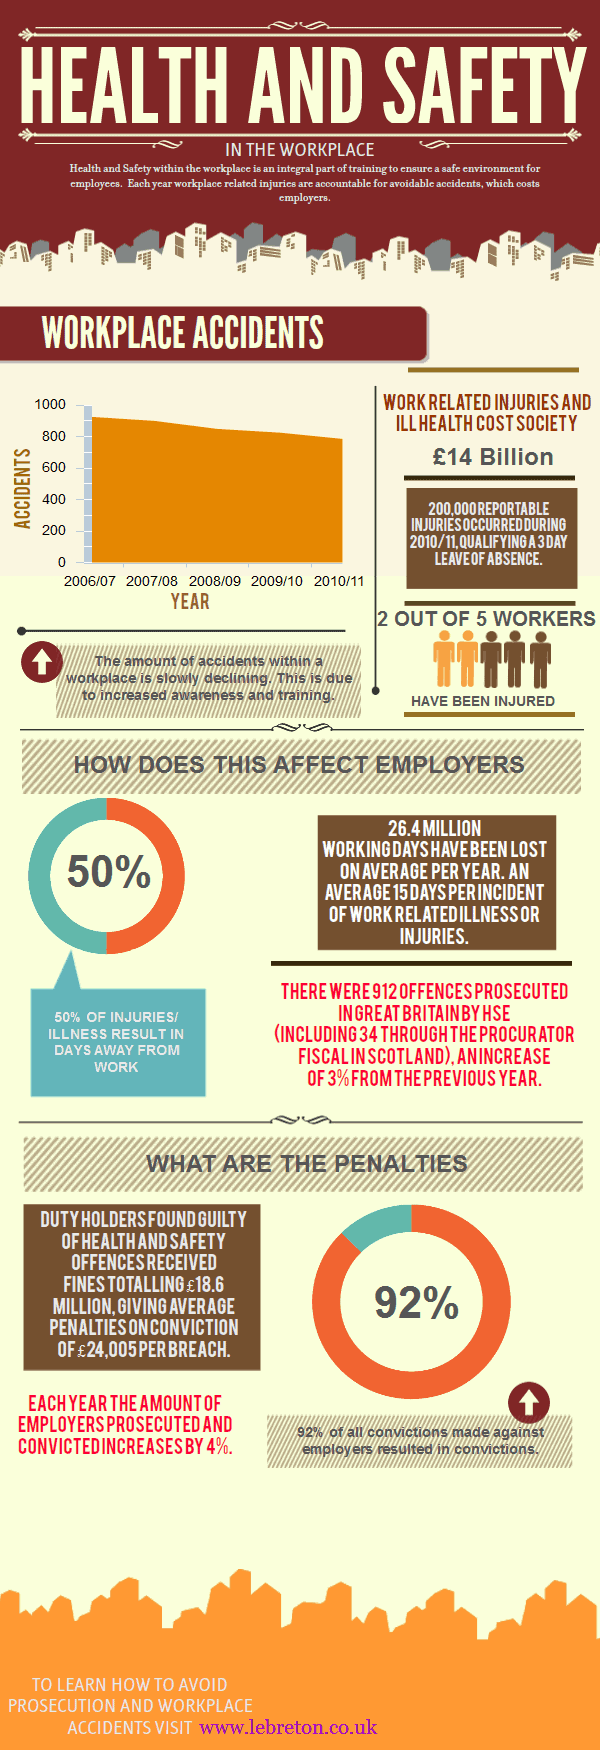 safety workplace infographic